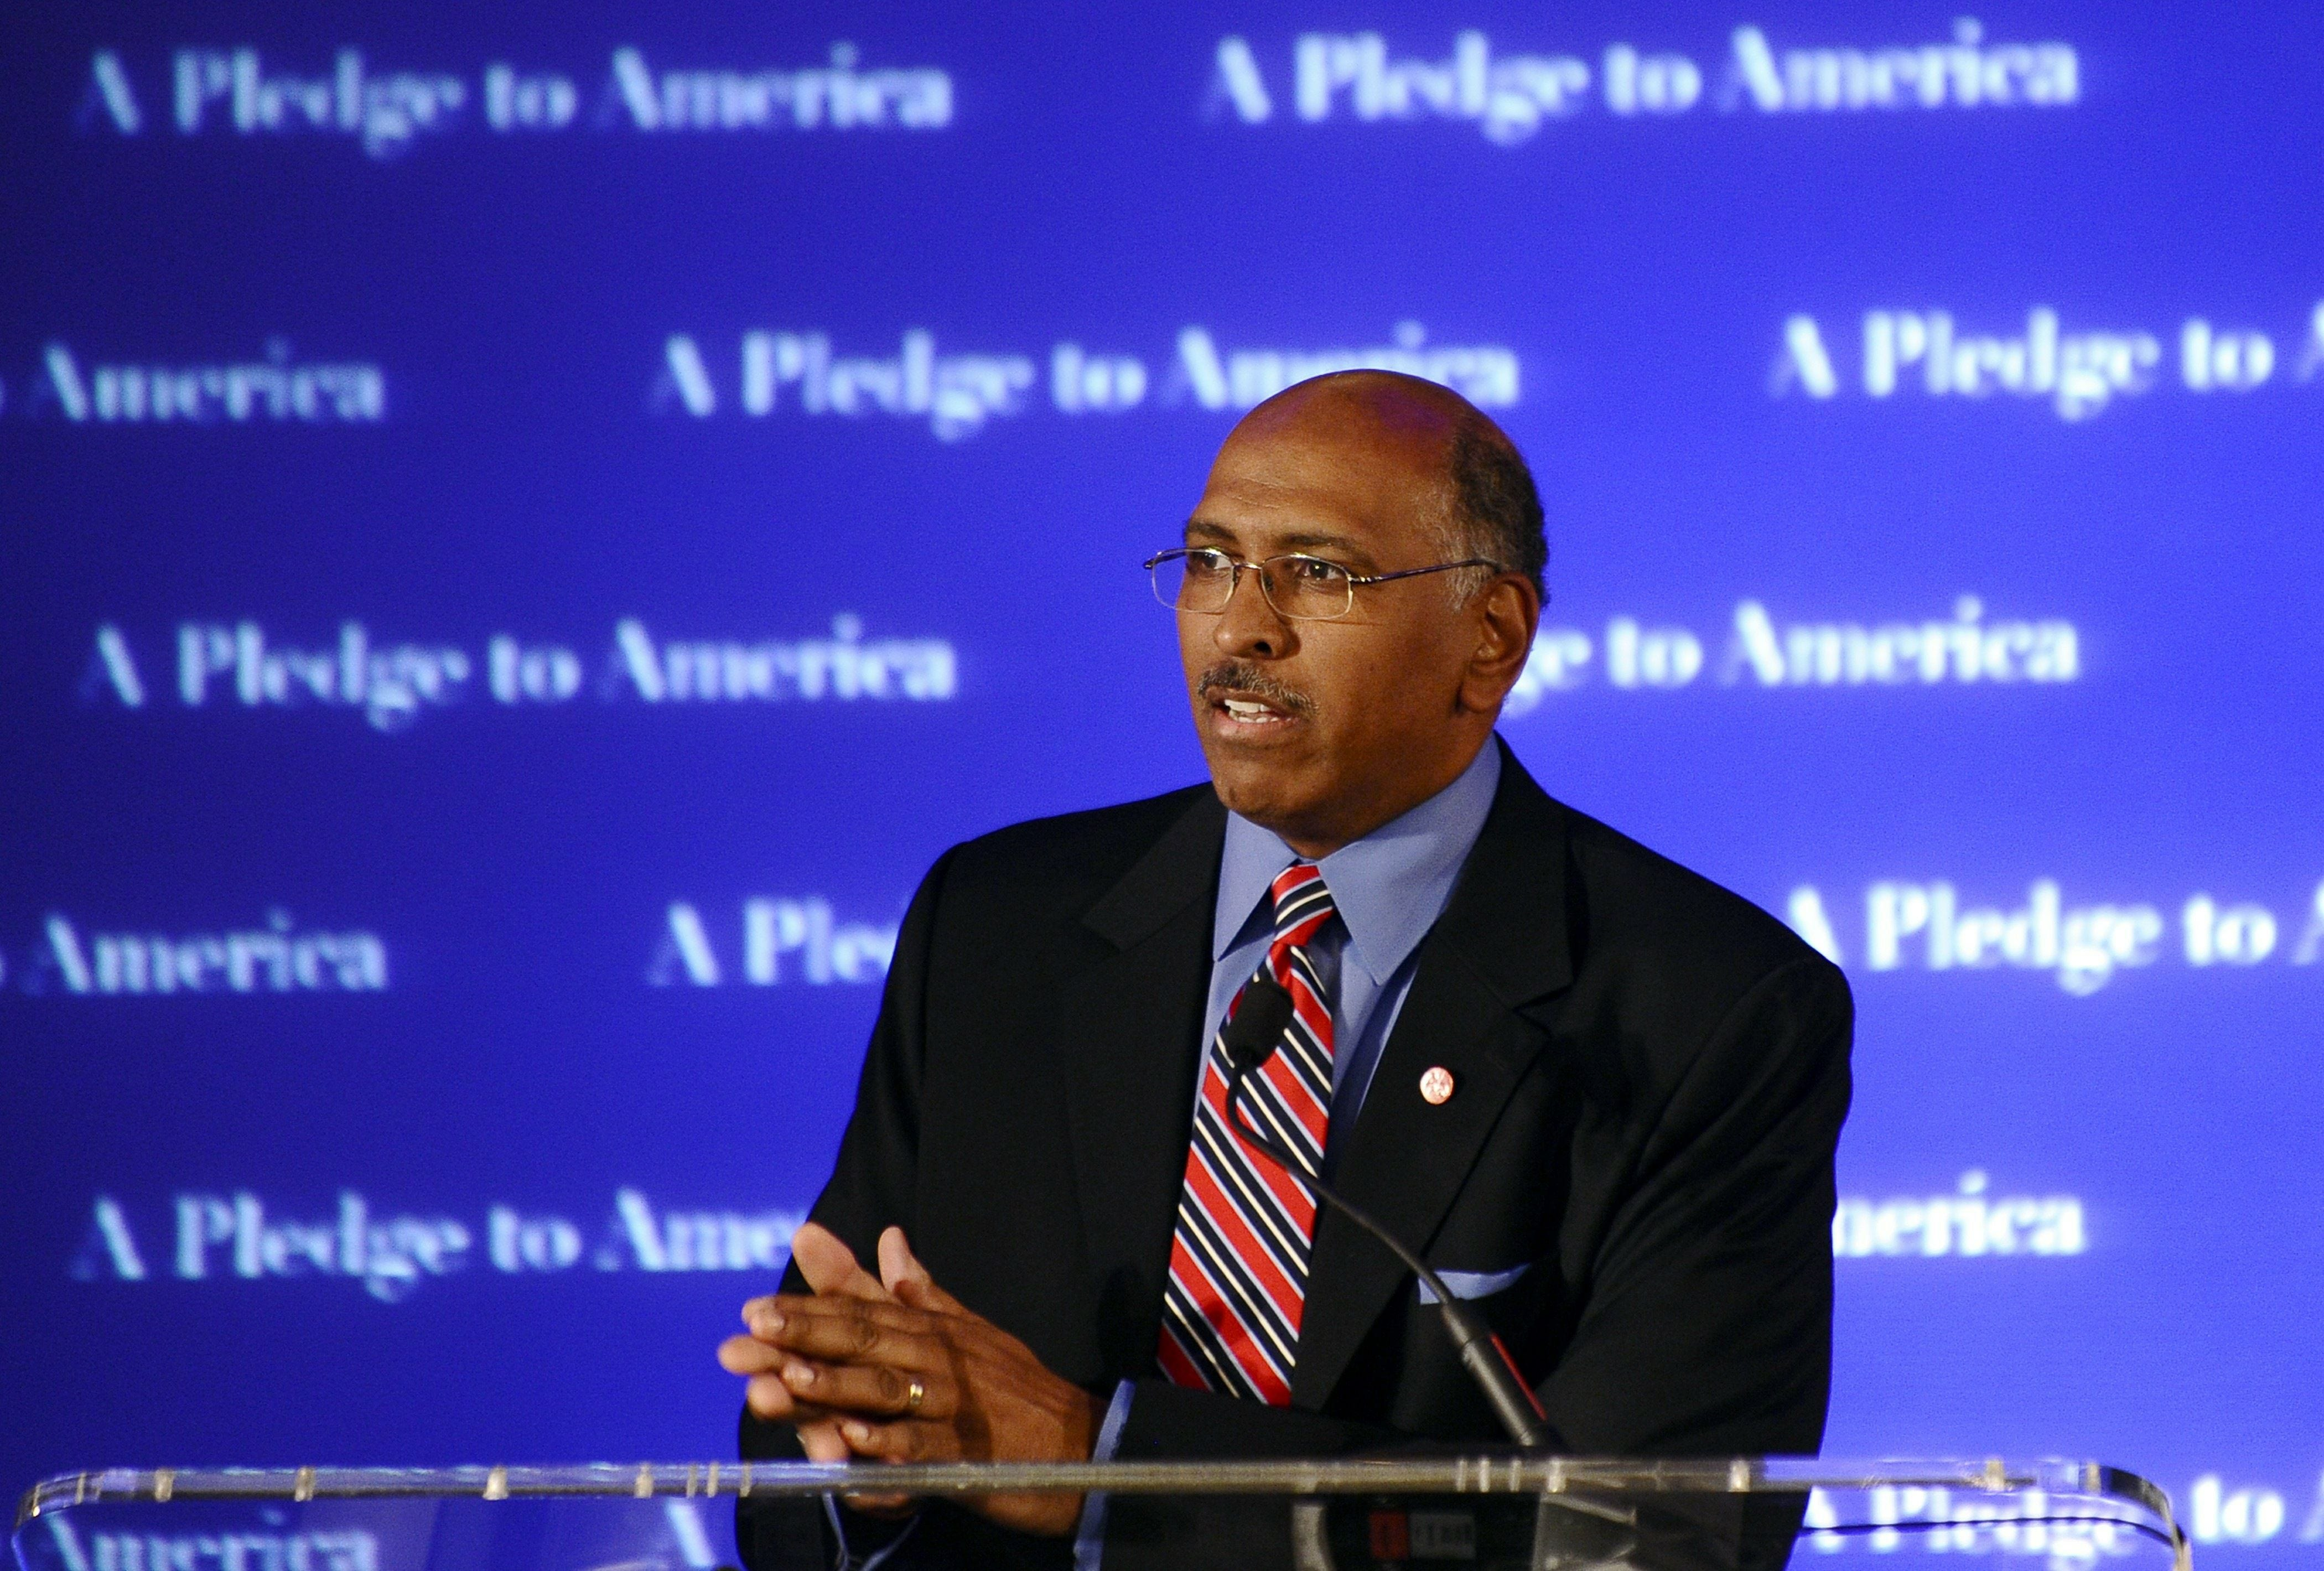 Michael Steele blasts CPAC official for 'painfully stupid' insult